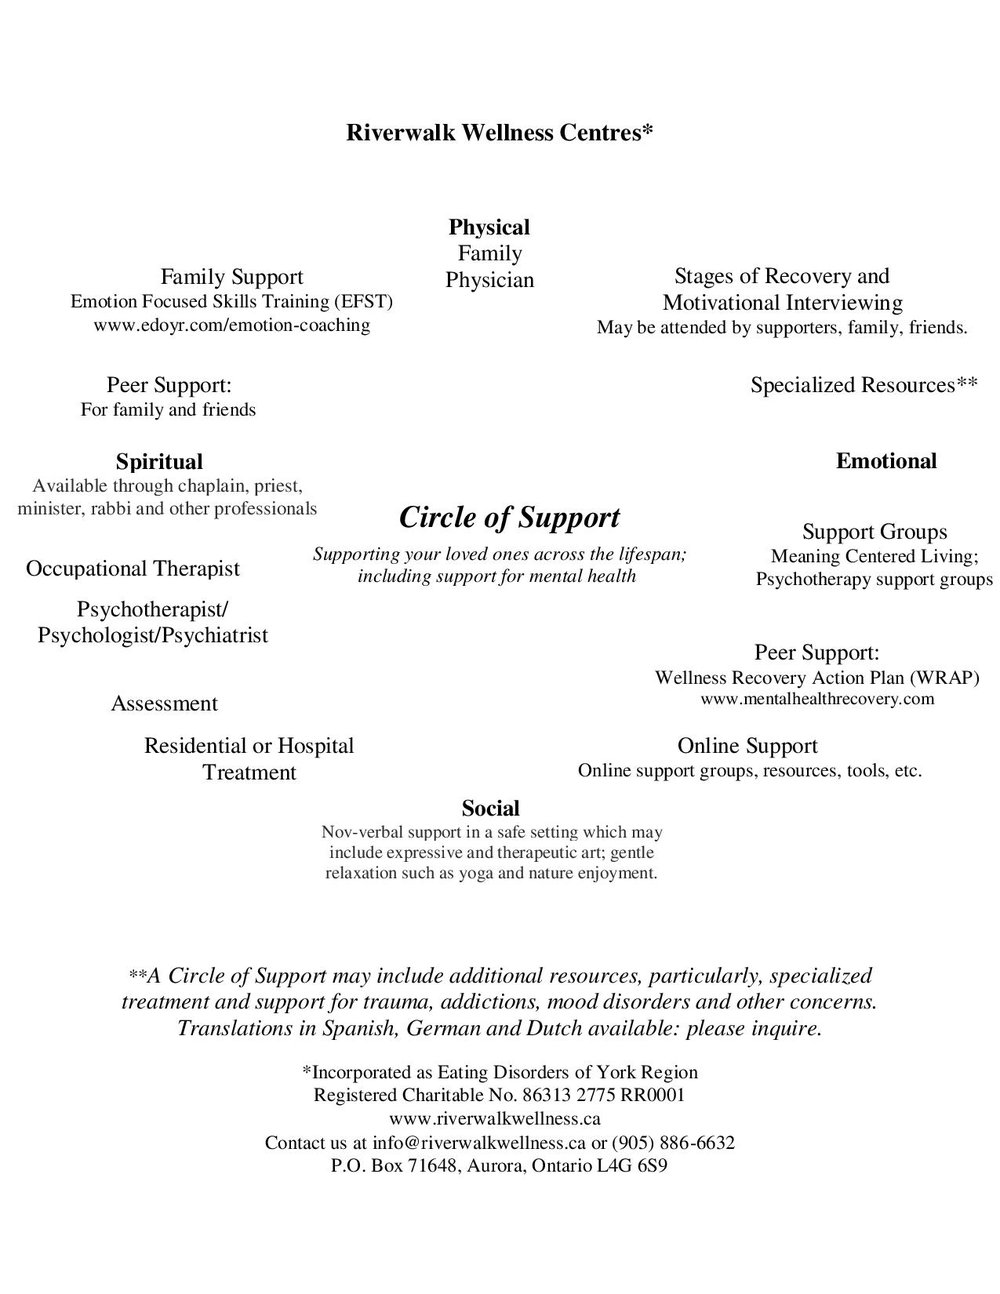 circle of support — eating disorders of york region